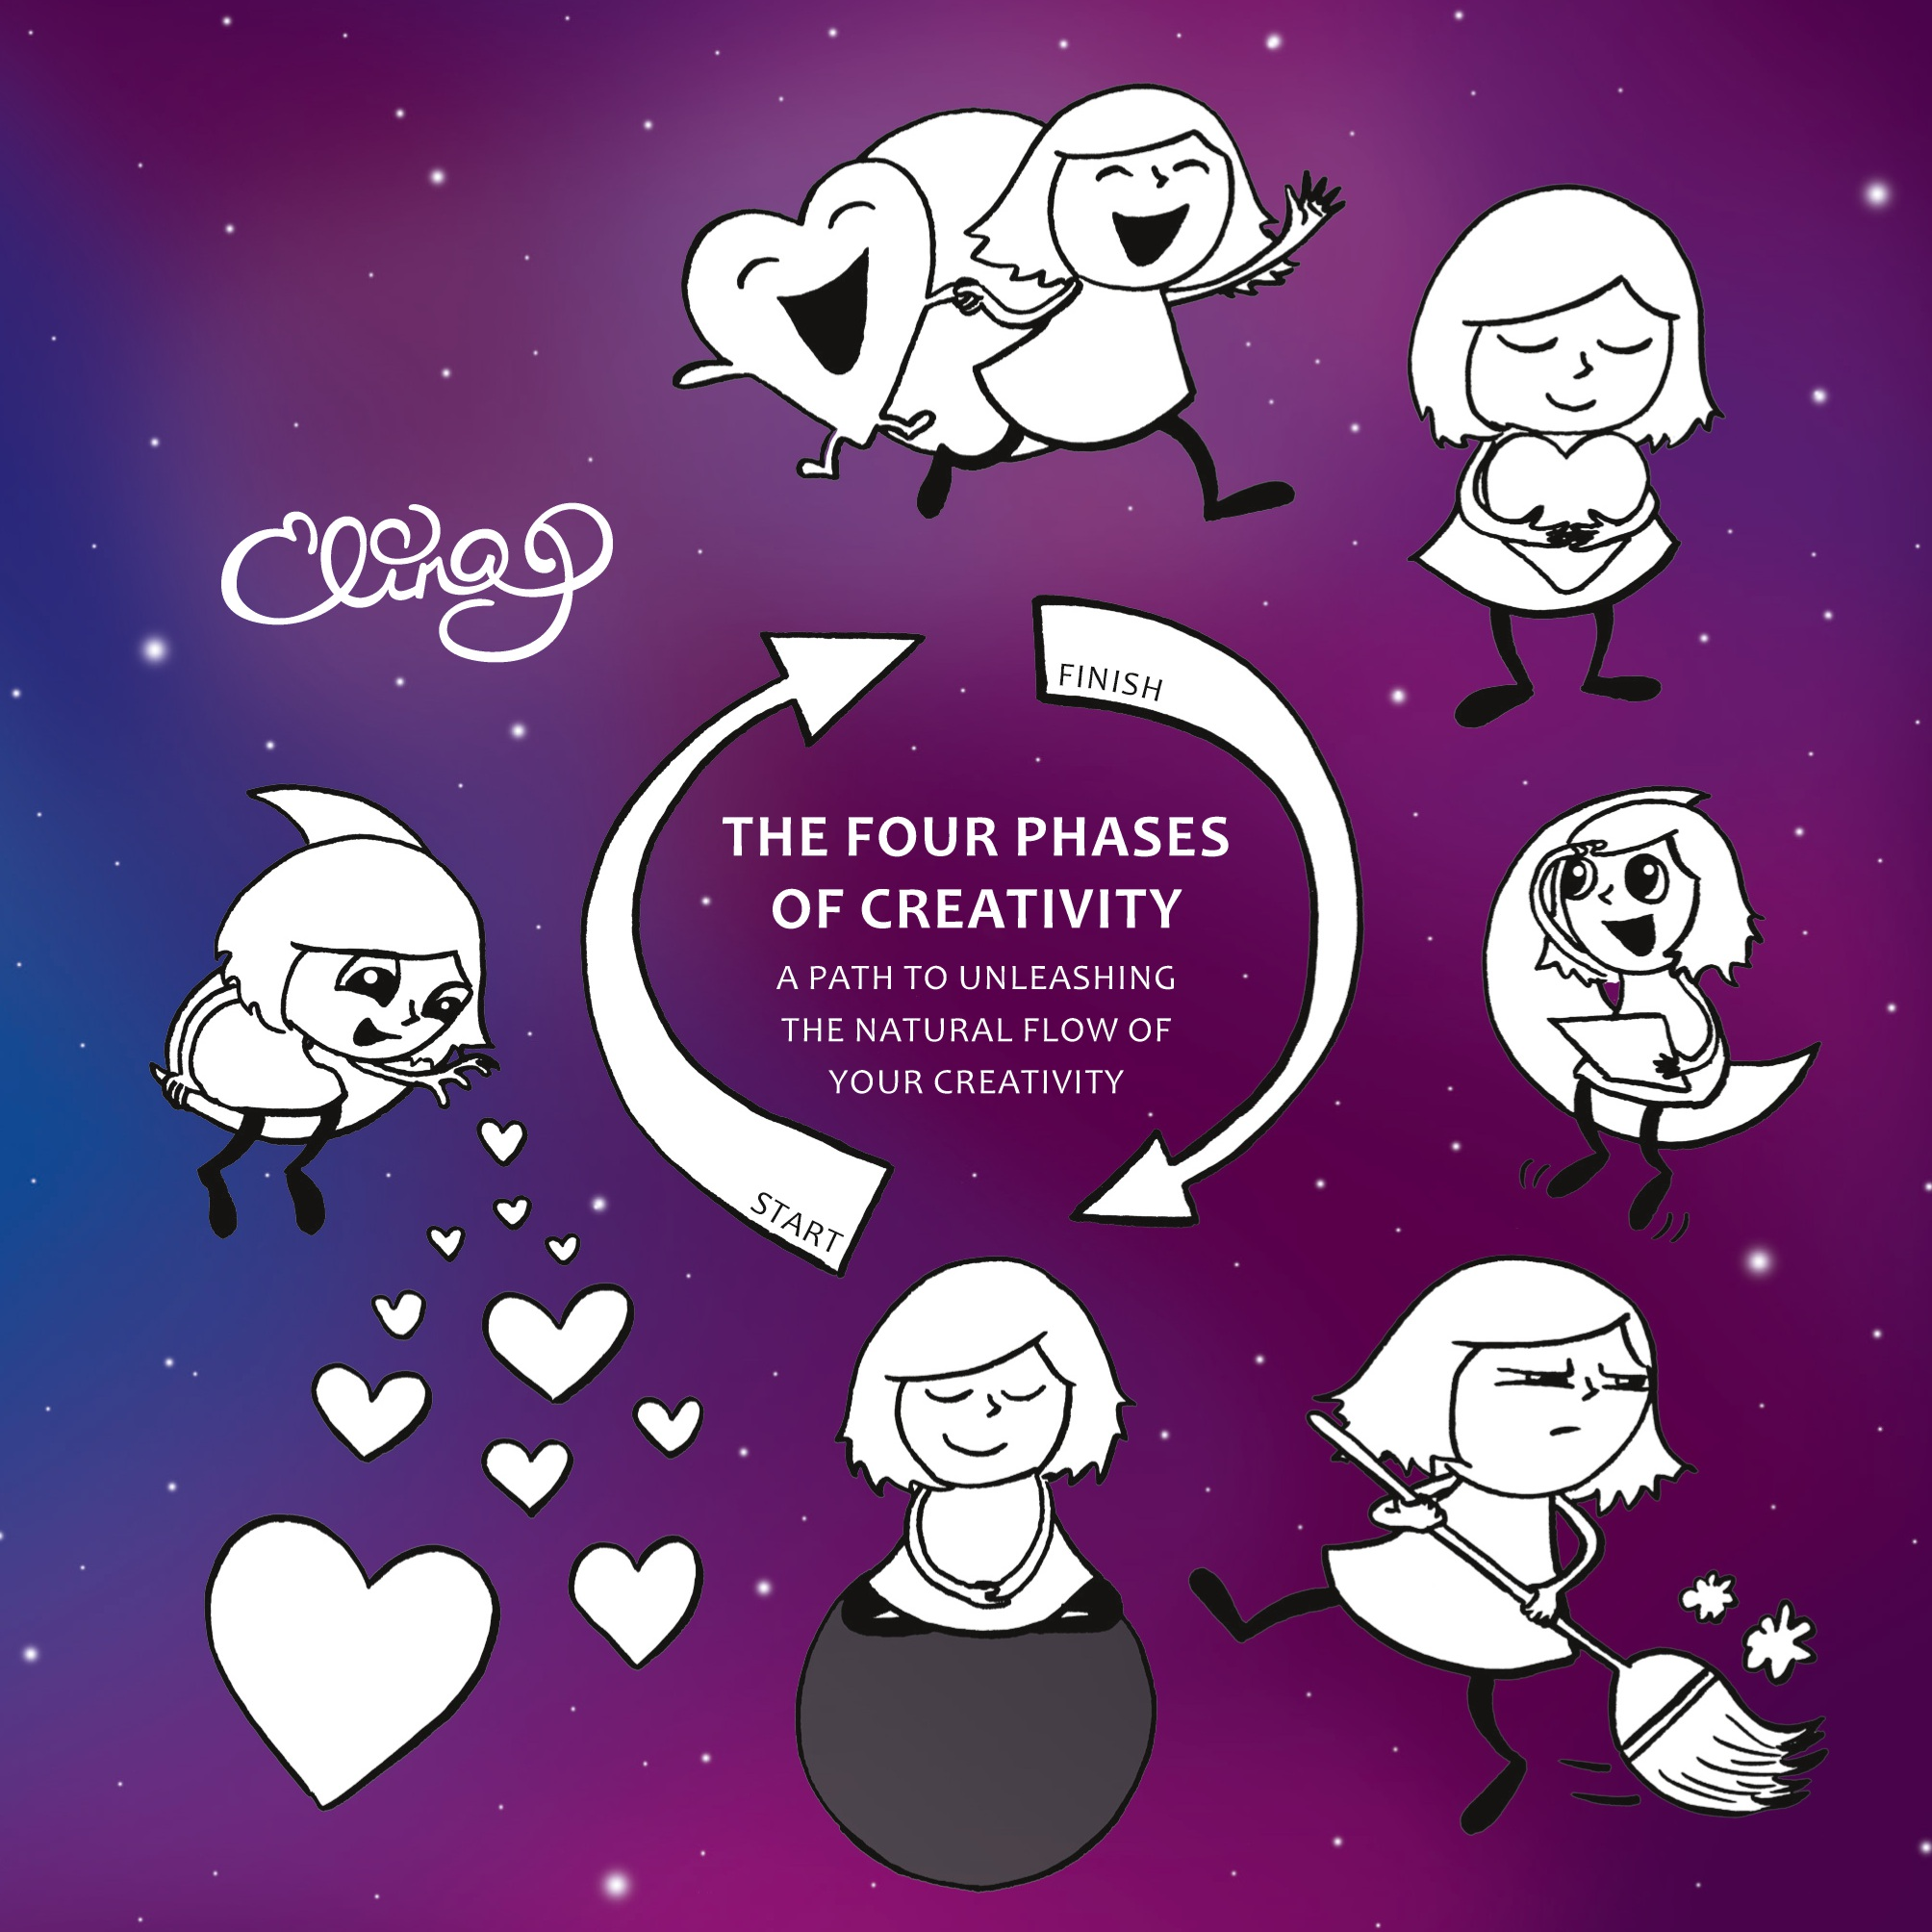 The Four Phases of Creativity